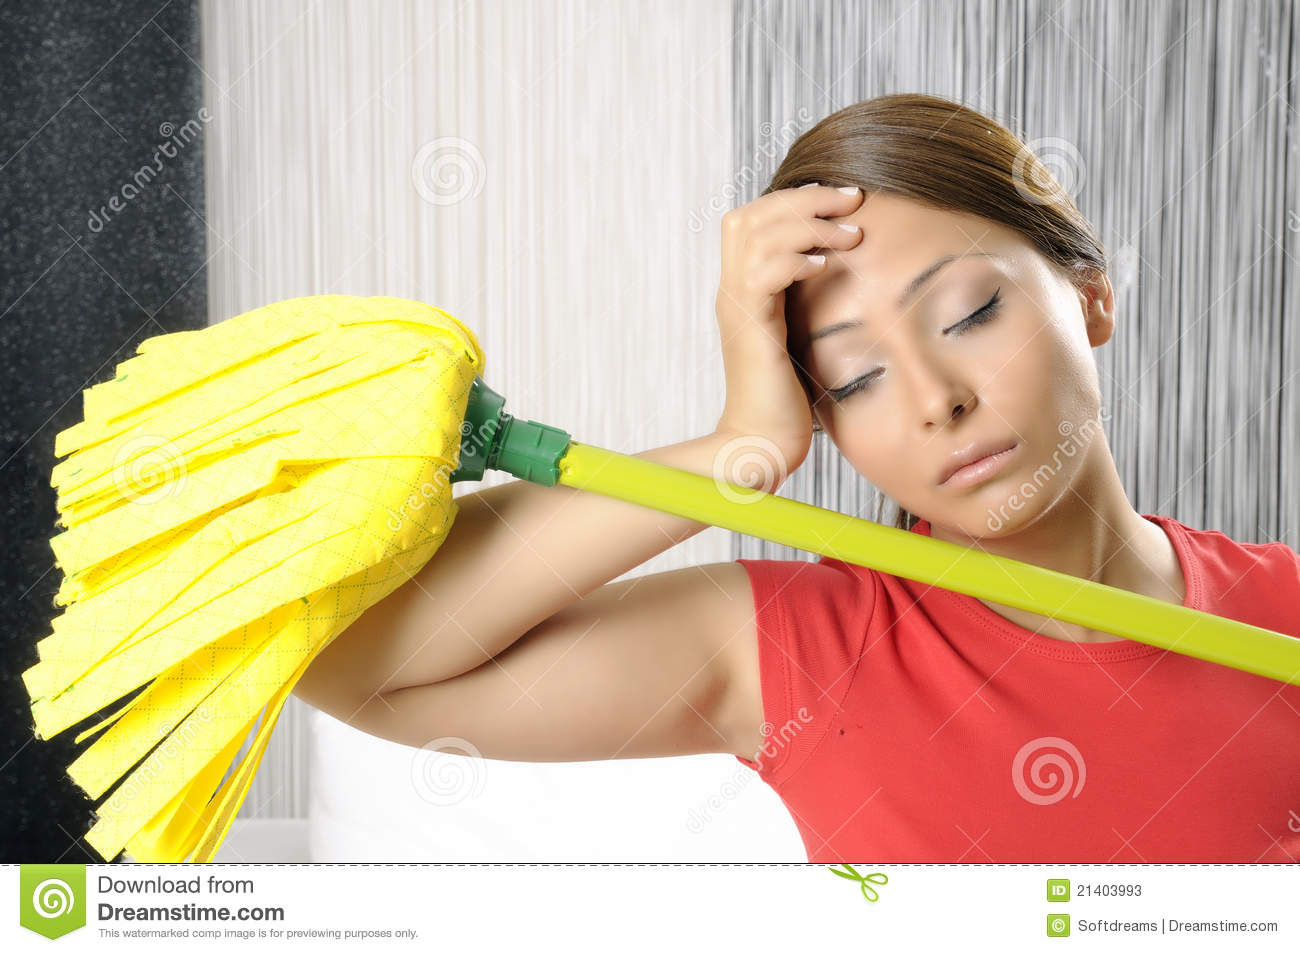 Funny Tired House Cleaning Woman Stock Image - Image of